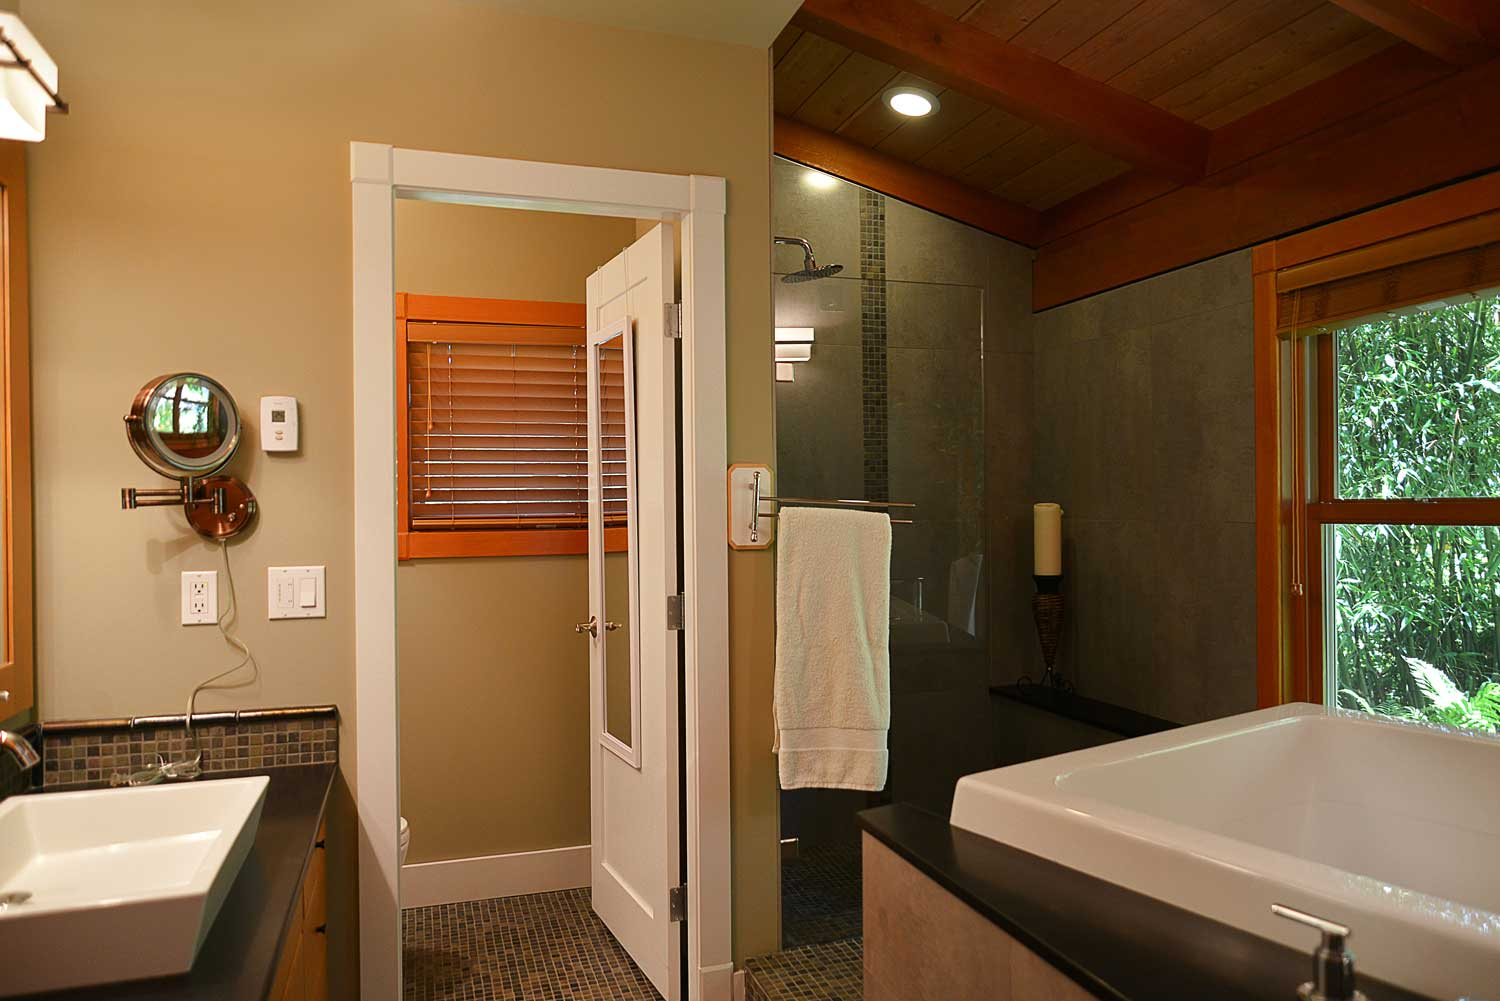 The master bathroom of this five-star holiday home comes equipped with a Japanese Furo tub and a deluxe shower.